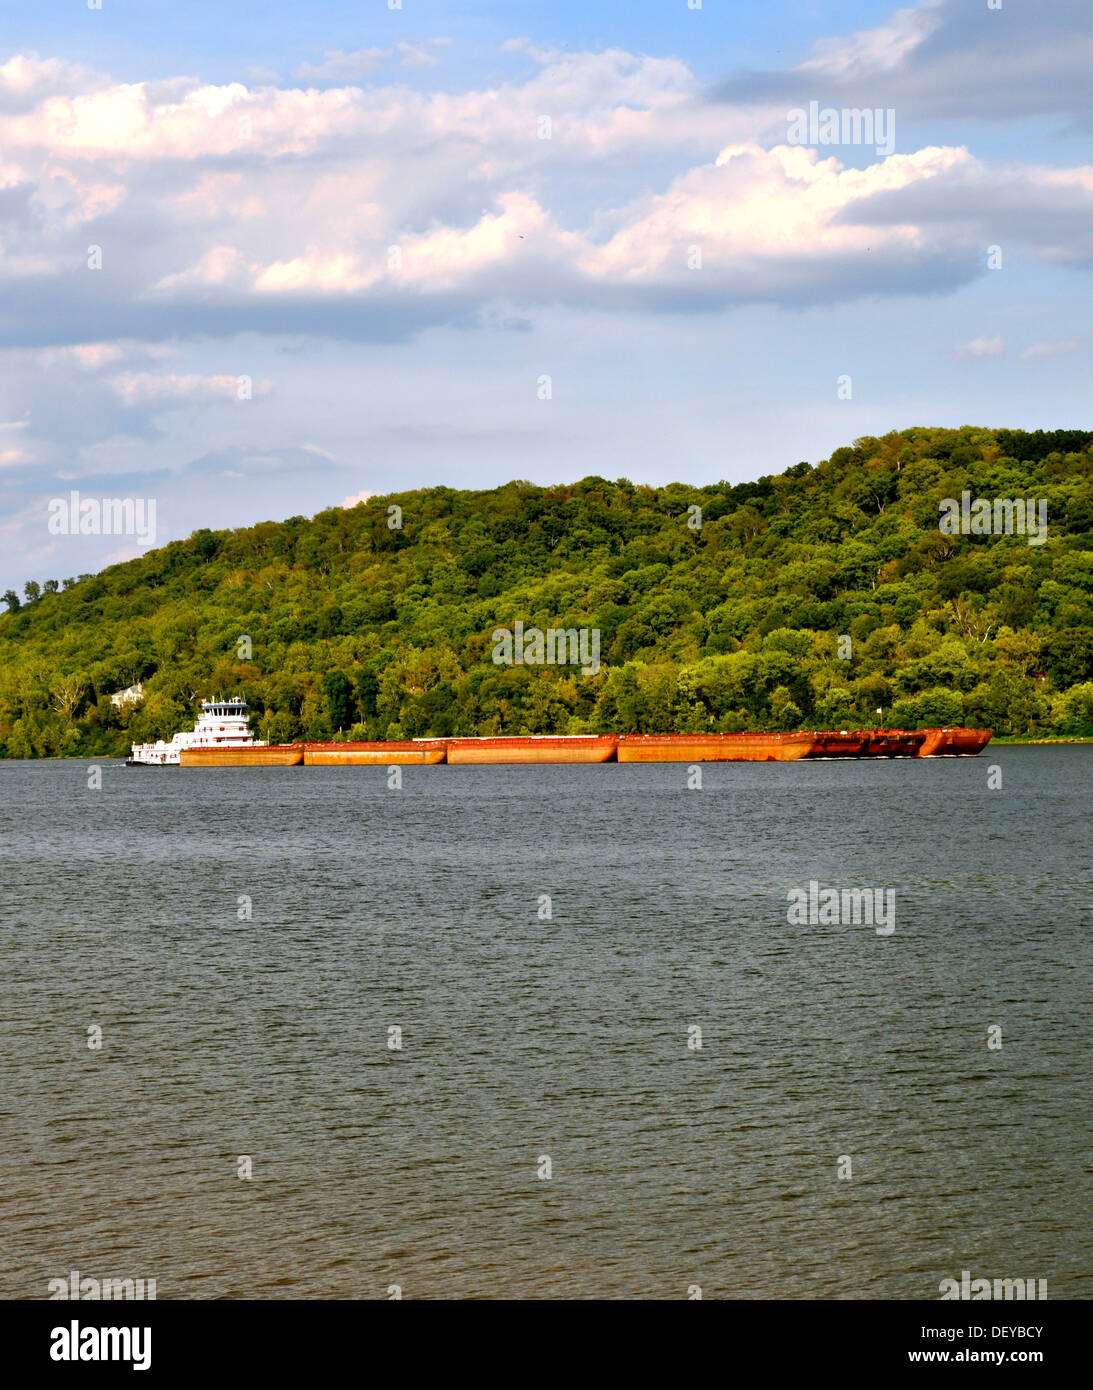 towboat and barge - Rising Sun 3 - Stock Image